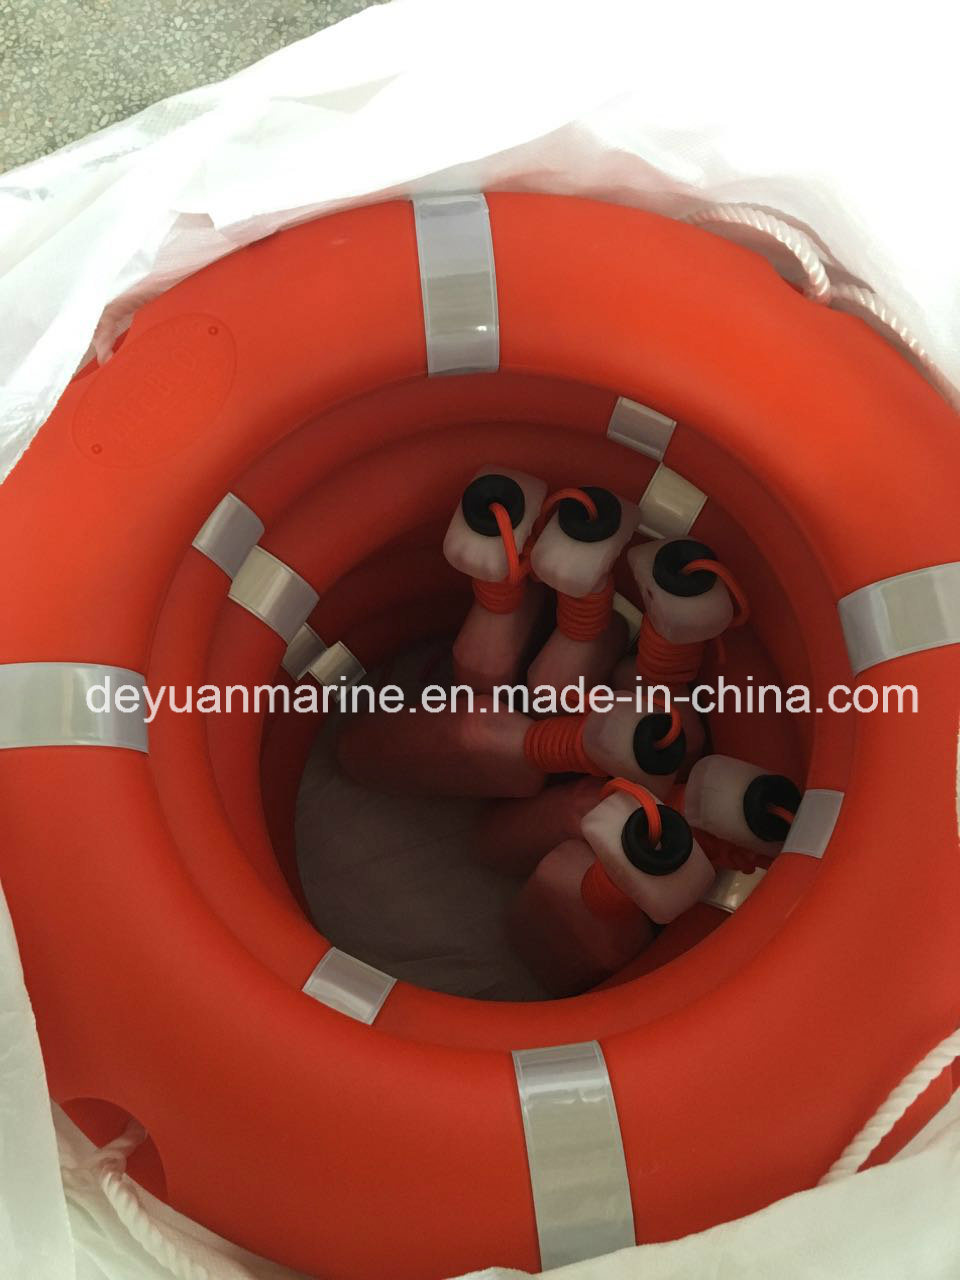 Solas Standard 2.5kg and 4.3kg Lifebuoy Ring with Lifeline and Bracket and Buoyant Smoke Signal and Selfigniting Light